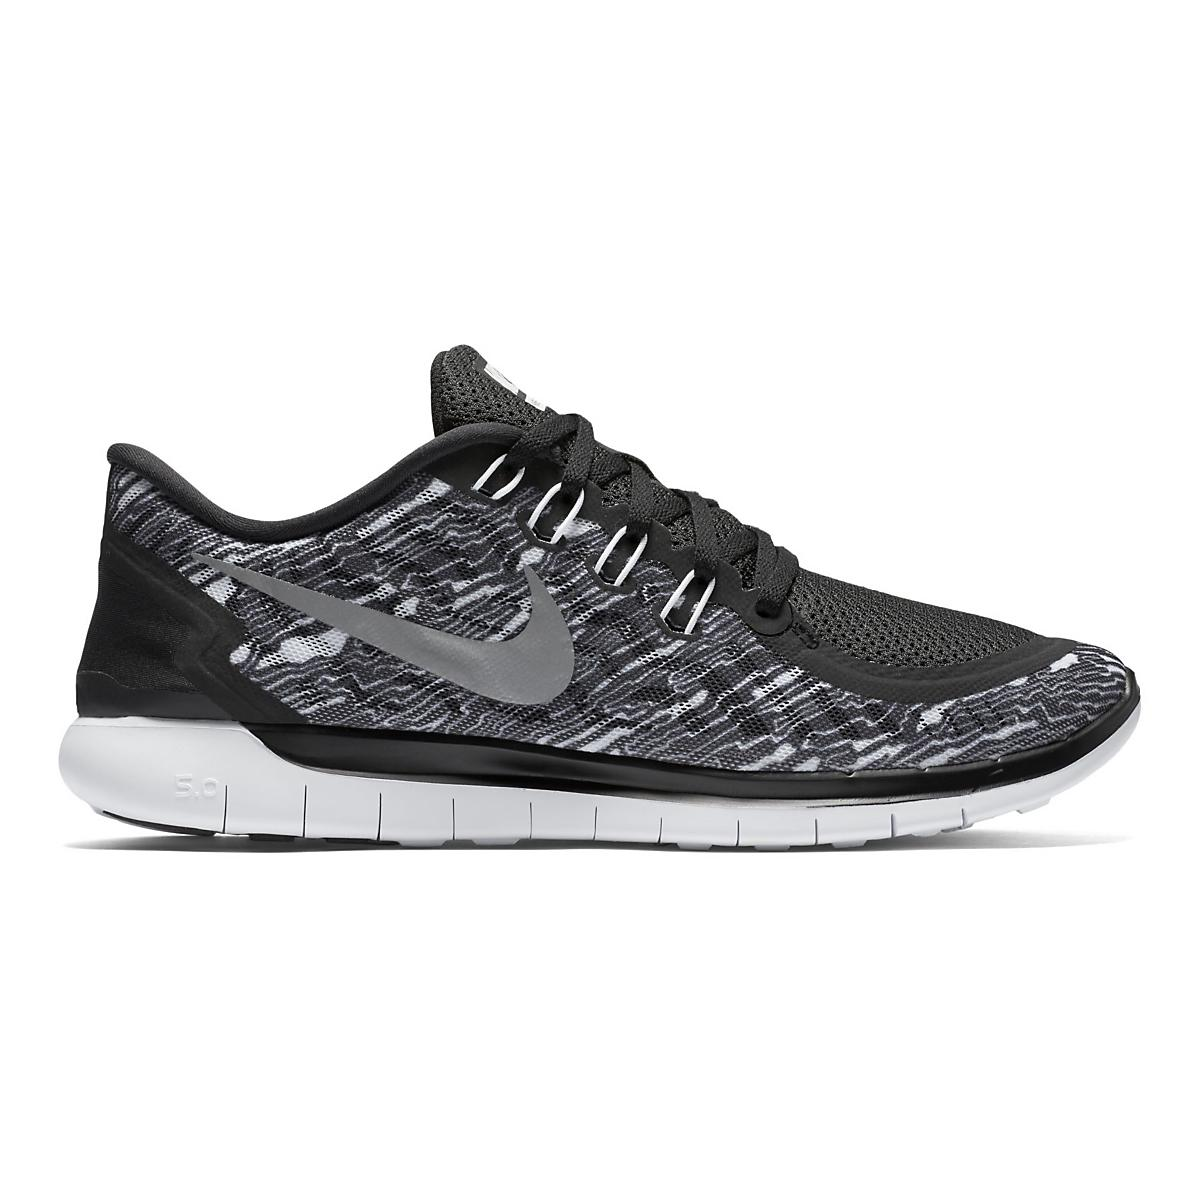 Mens Nike Free 5.0 Print Running Shoe at Road Runner Sports